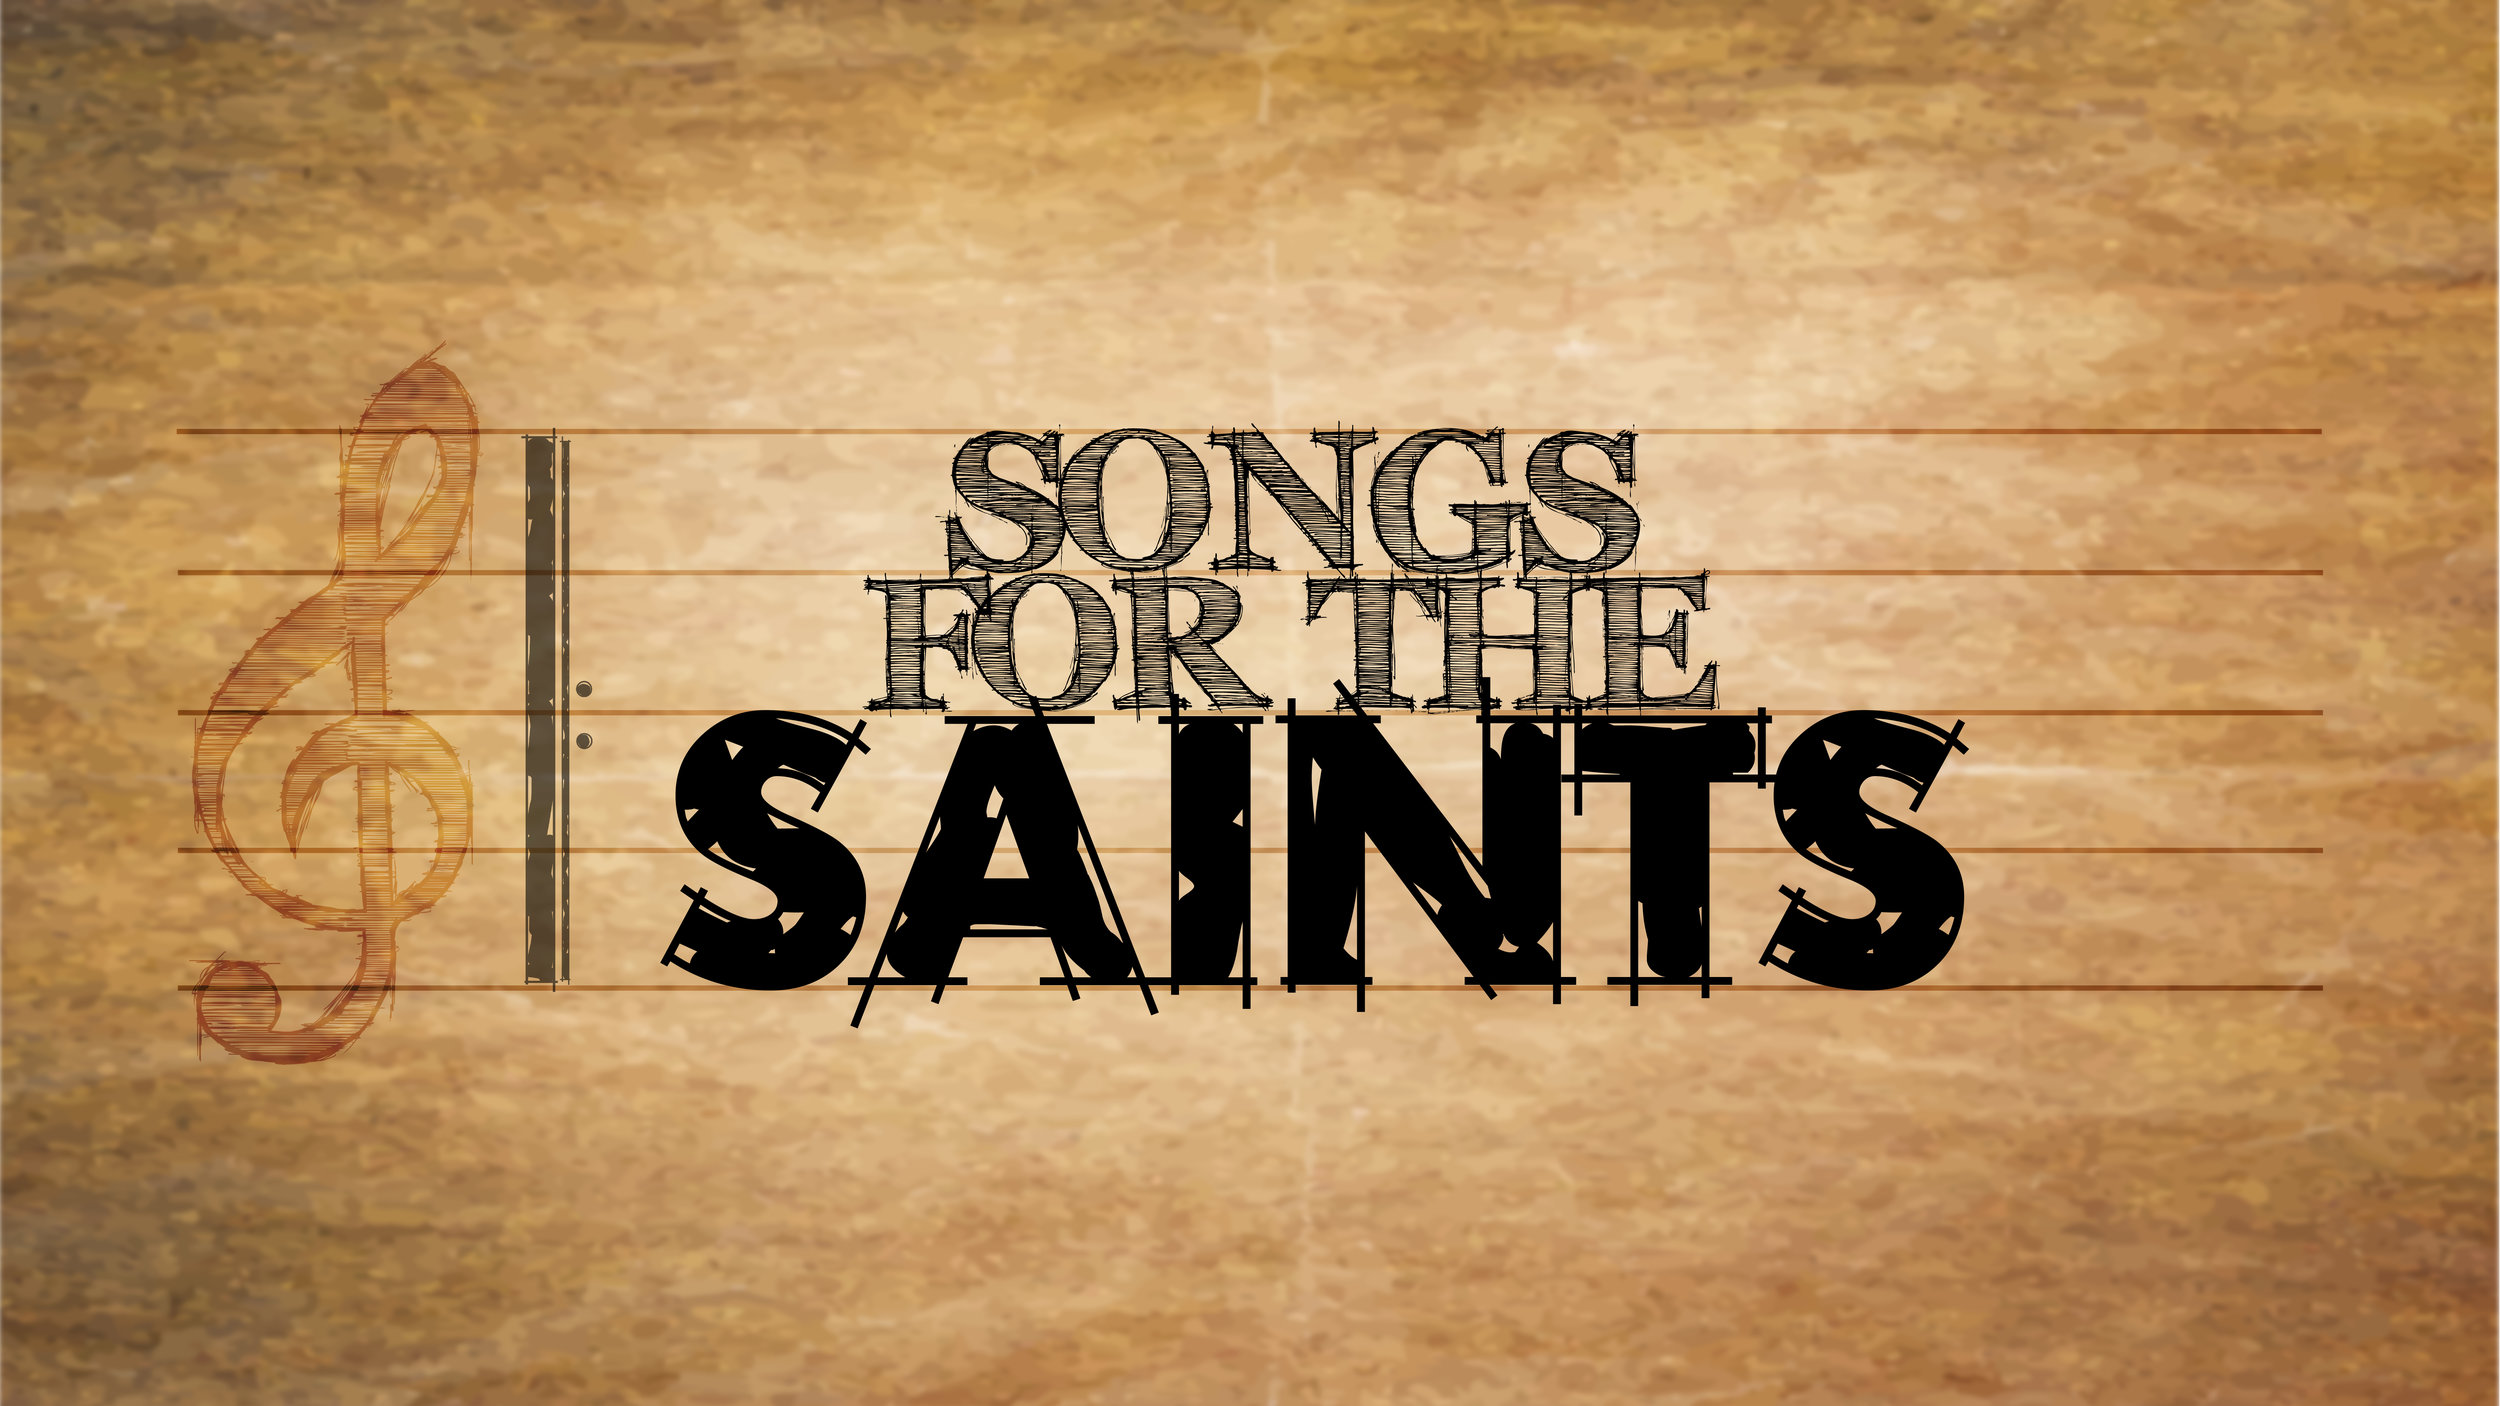 Songs for the Saints